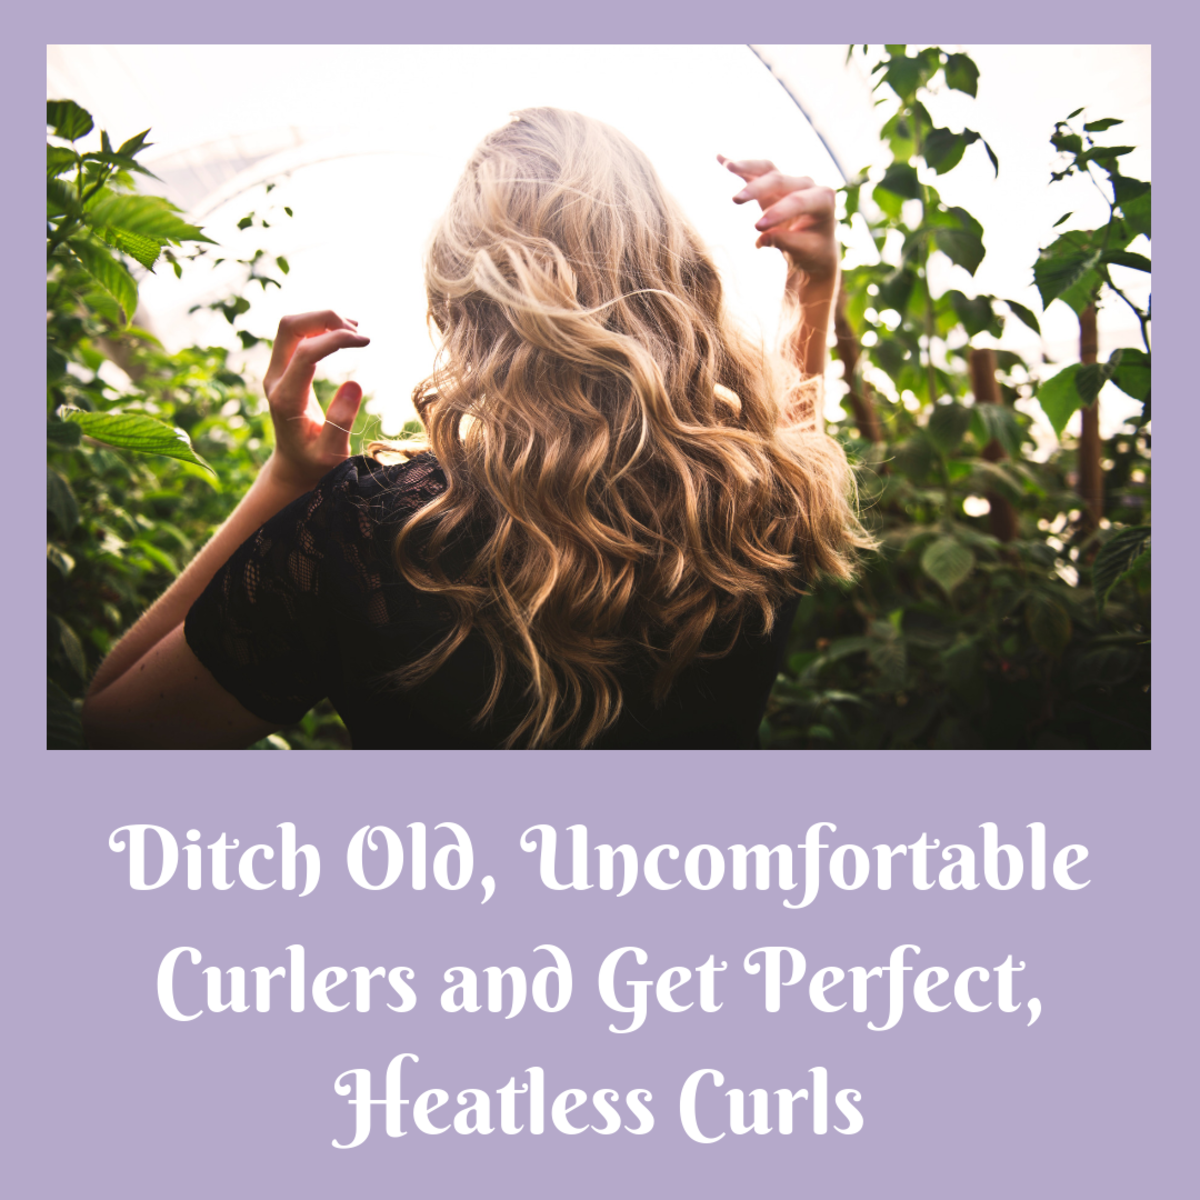 Here are five ways to get beautiful pain-free curls.